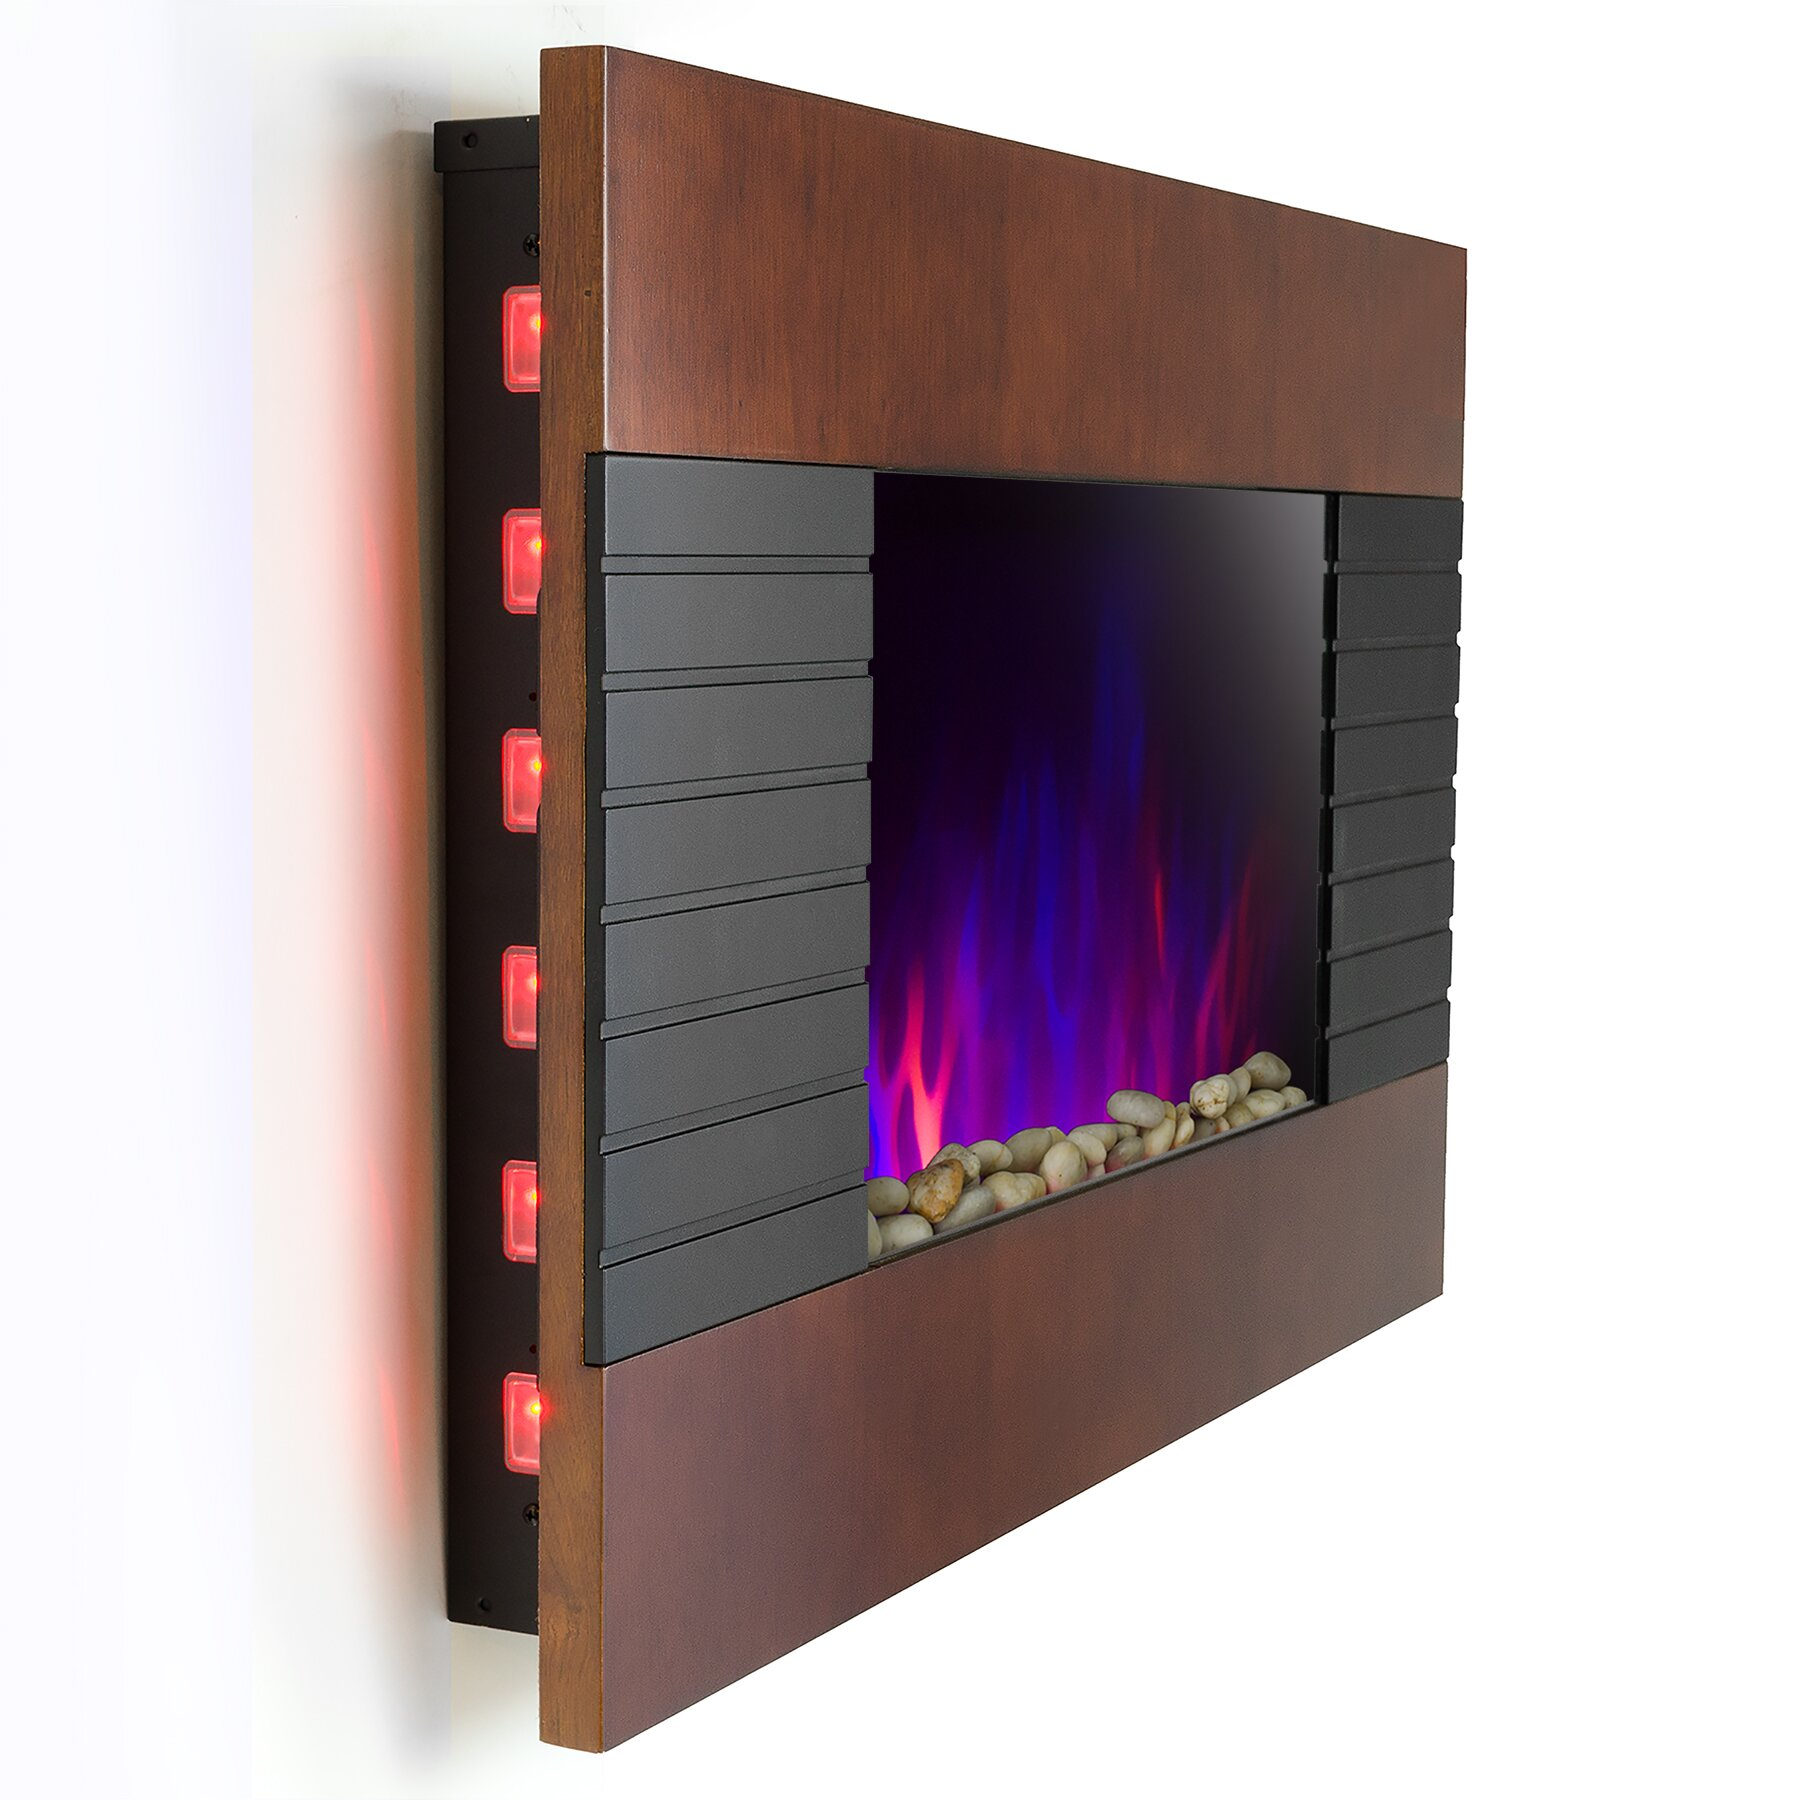 Goldenvantage Pebble And Log Interchangeable Wall Mount Electric Fireplace Reviews